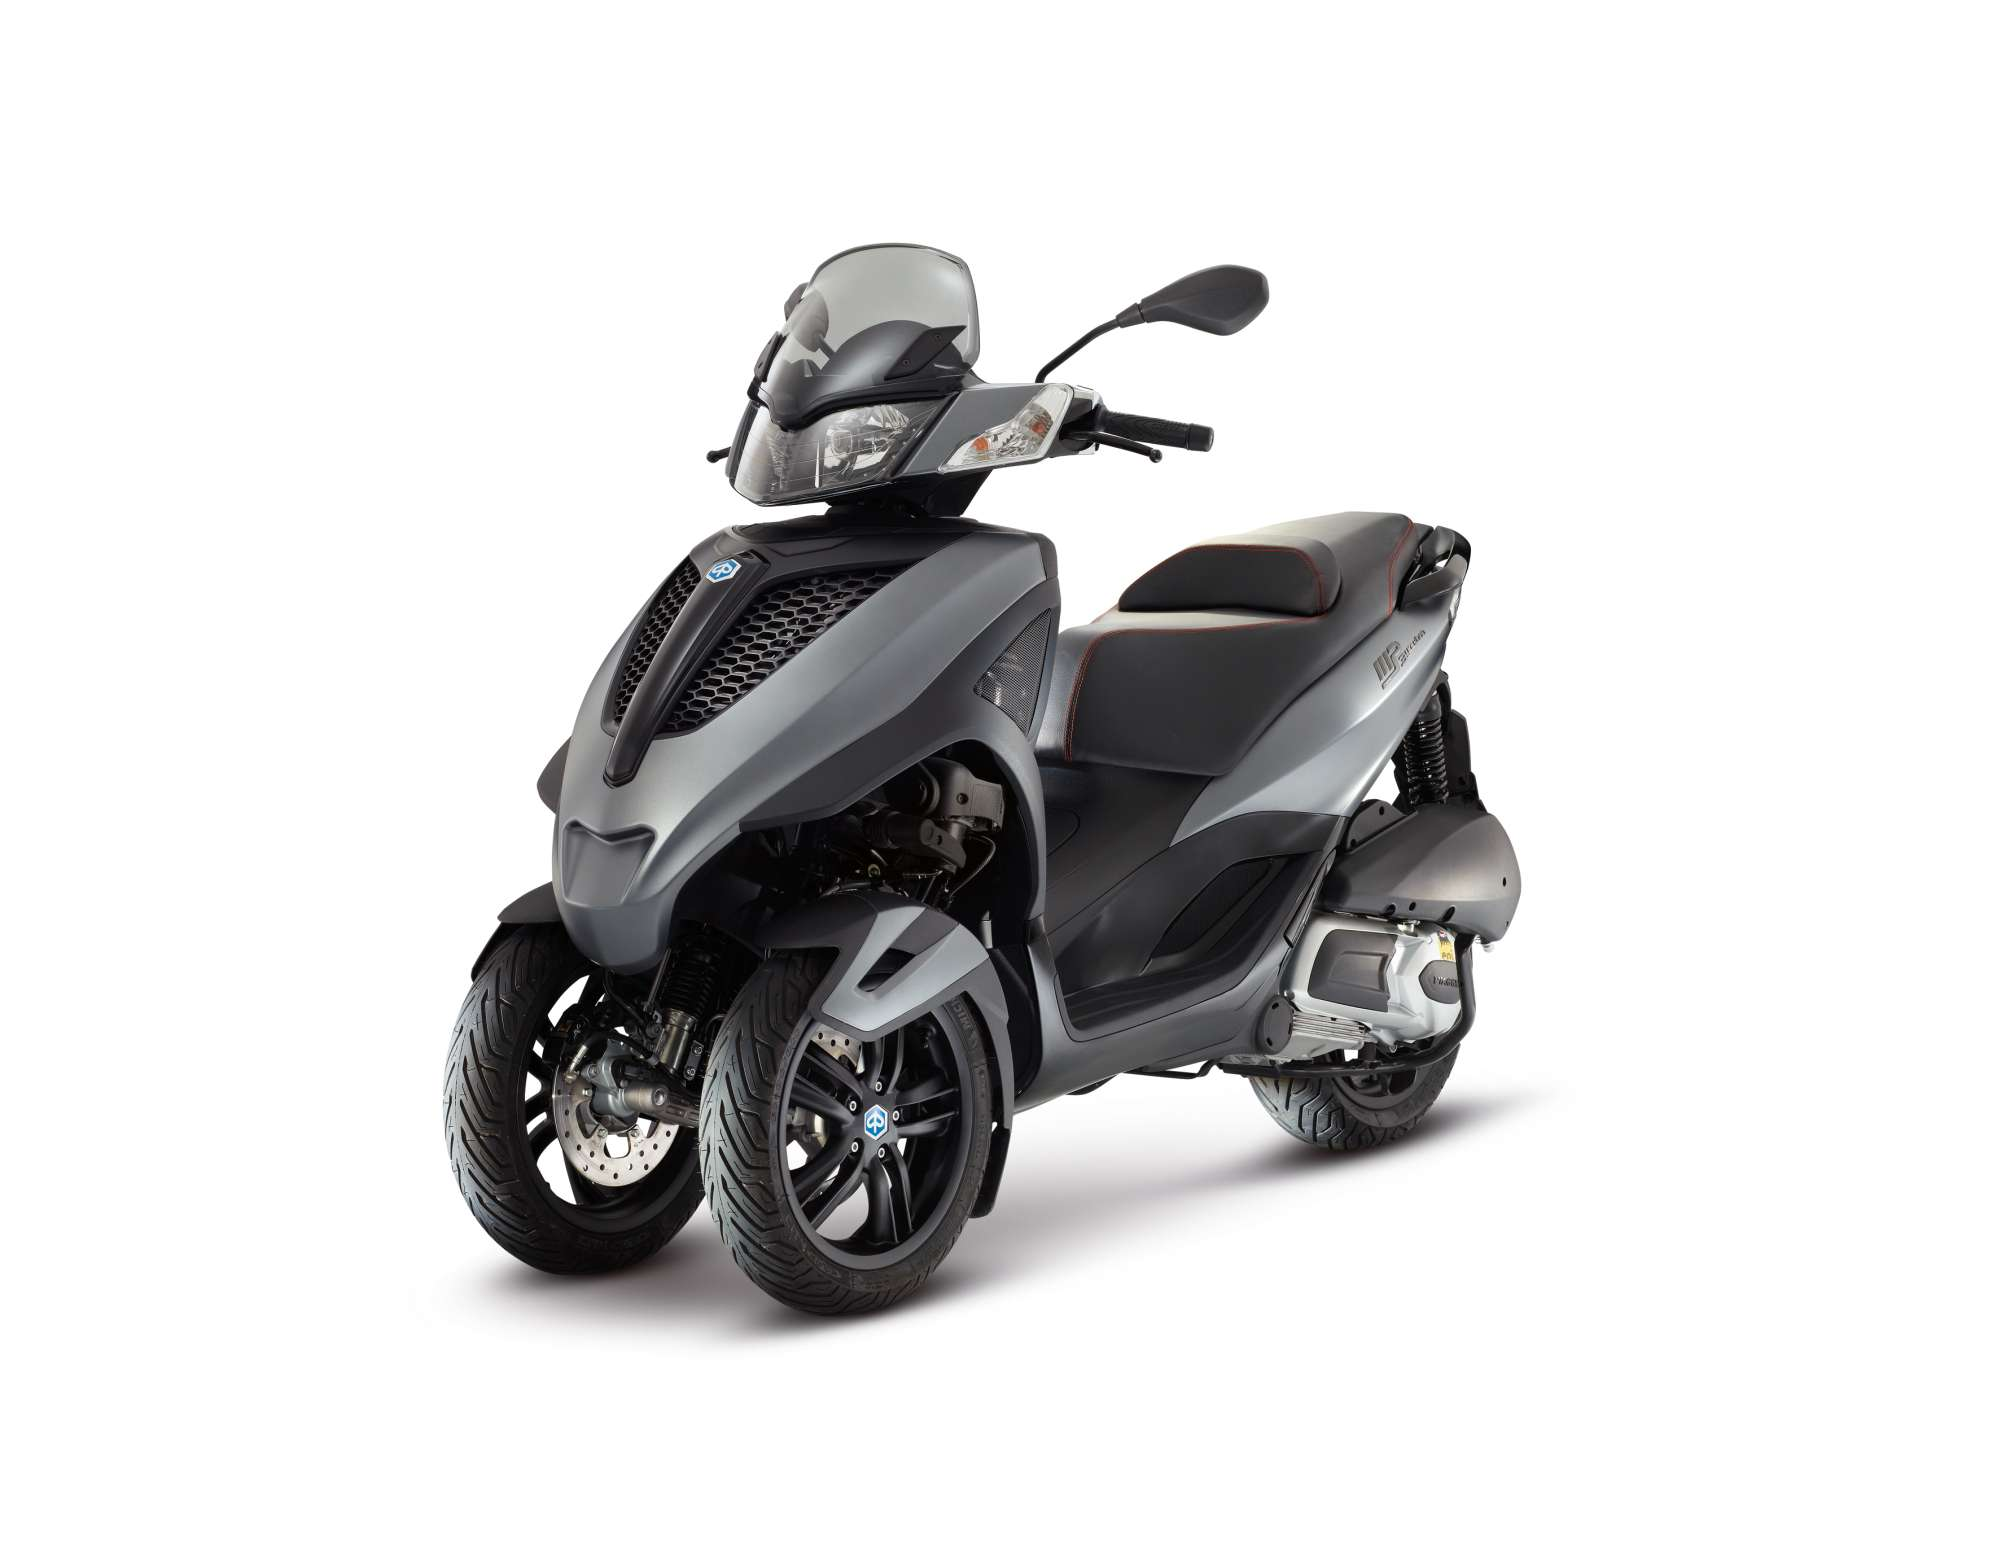 piaggio mp3 300 yourban erl 2011 2014 braking system transmissions brakes pipes calipers. Black Bedroom Furniture Sets. Home Design Ideas